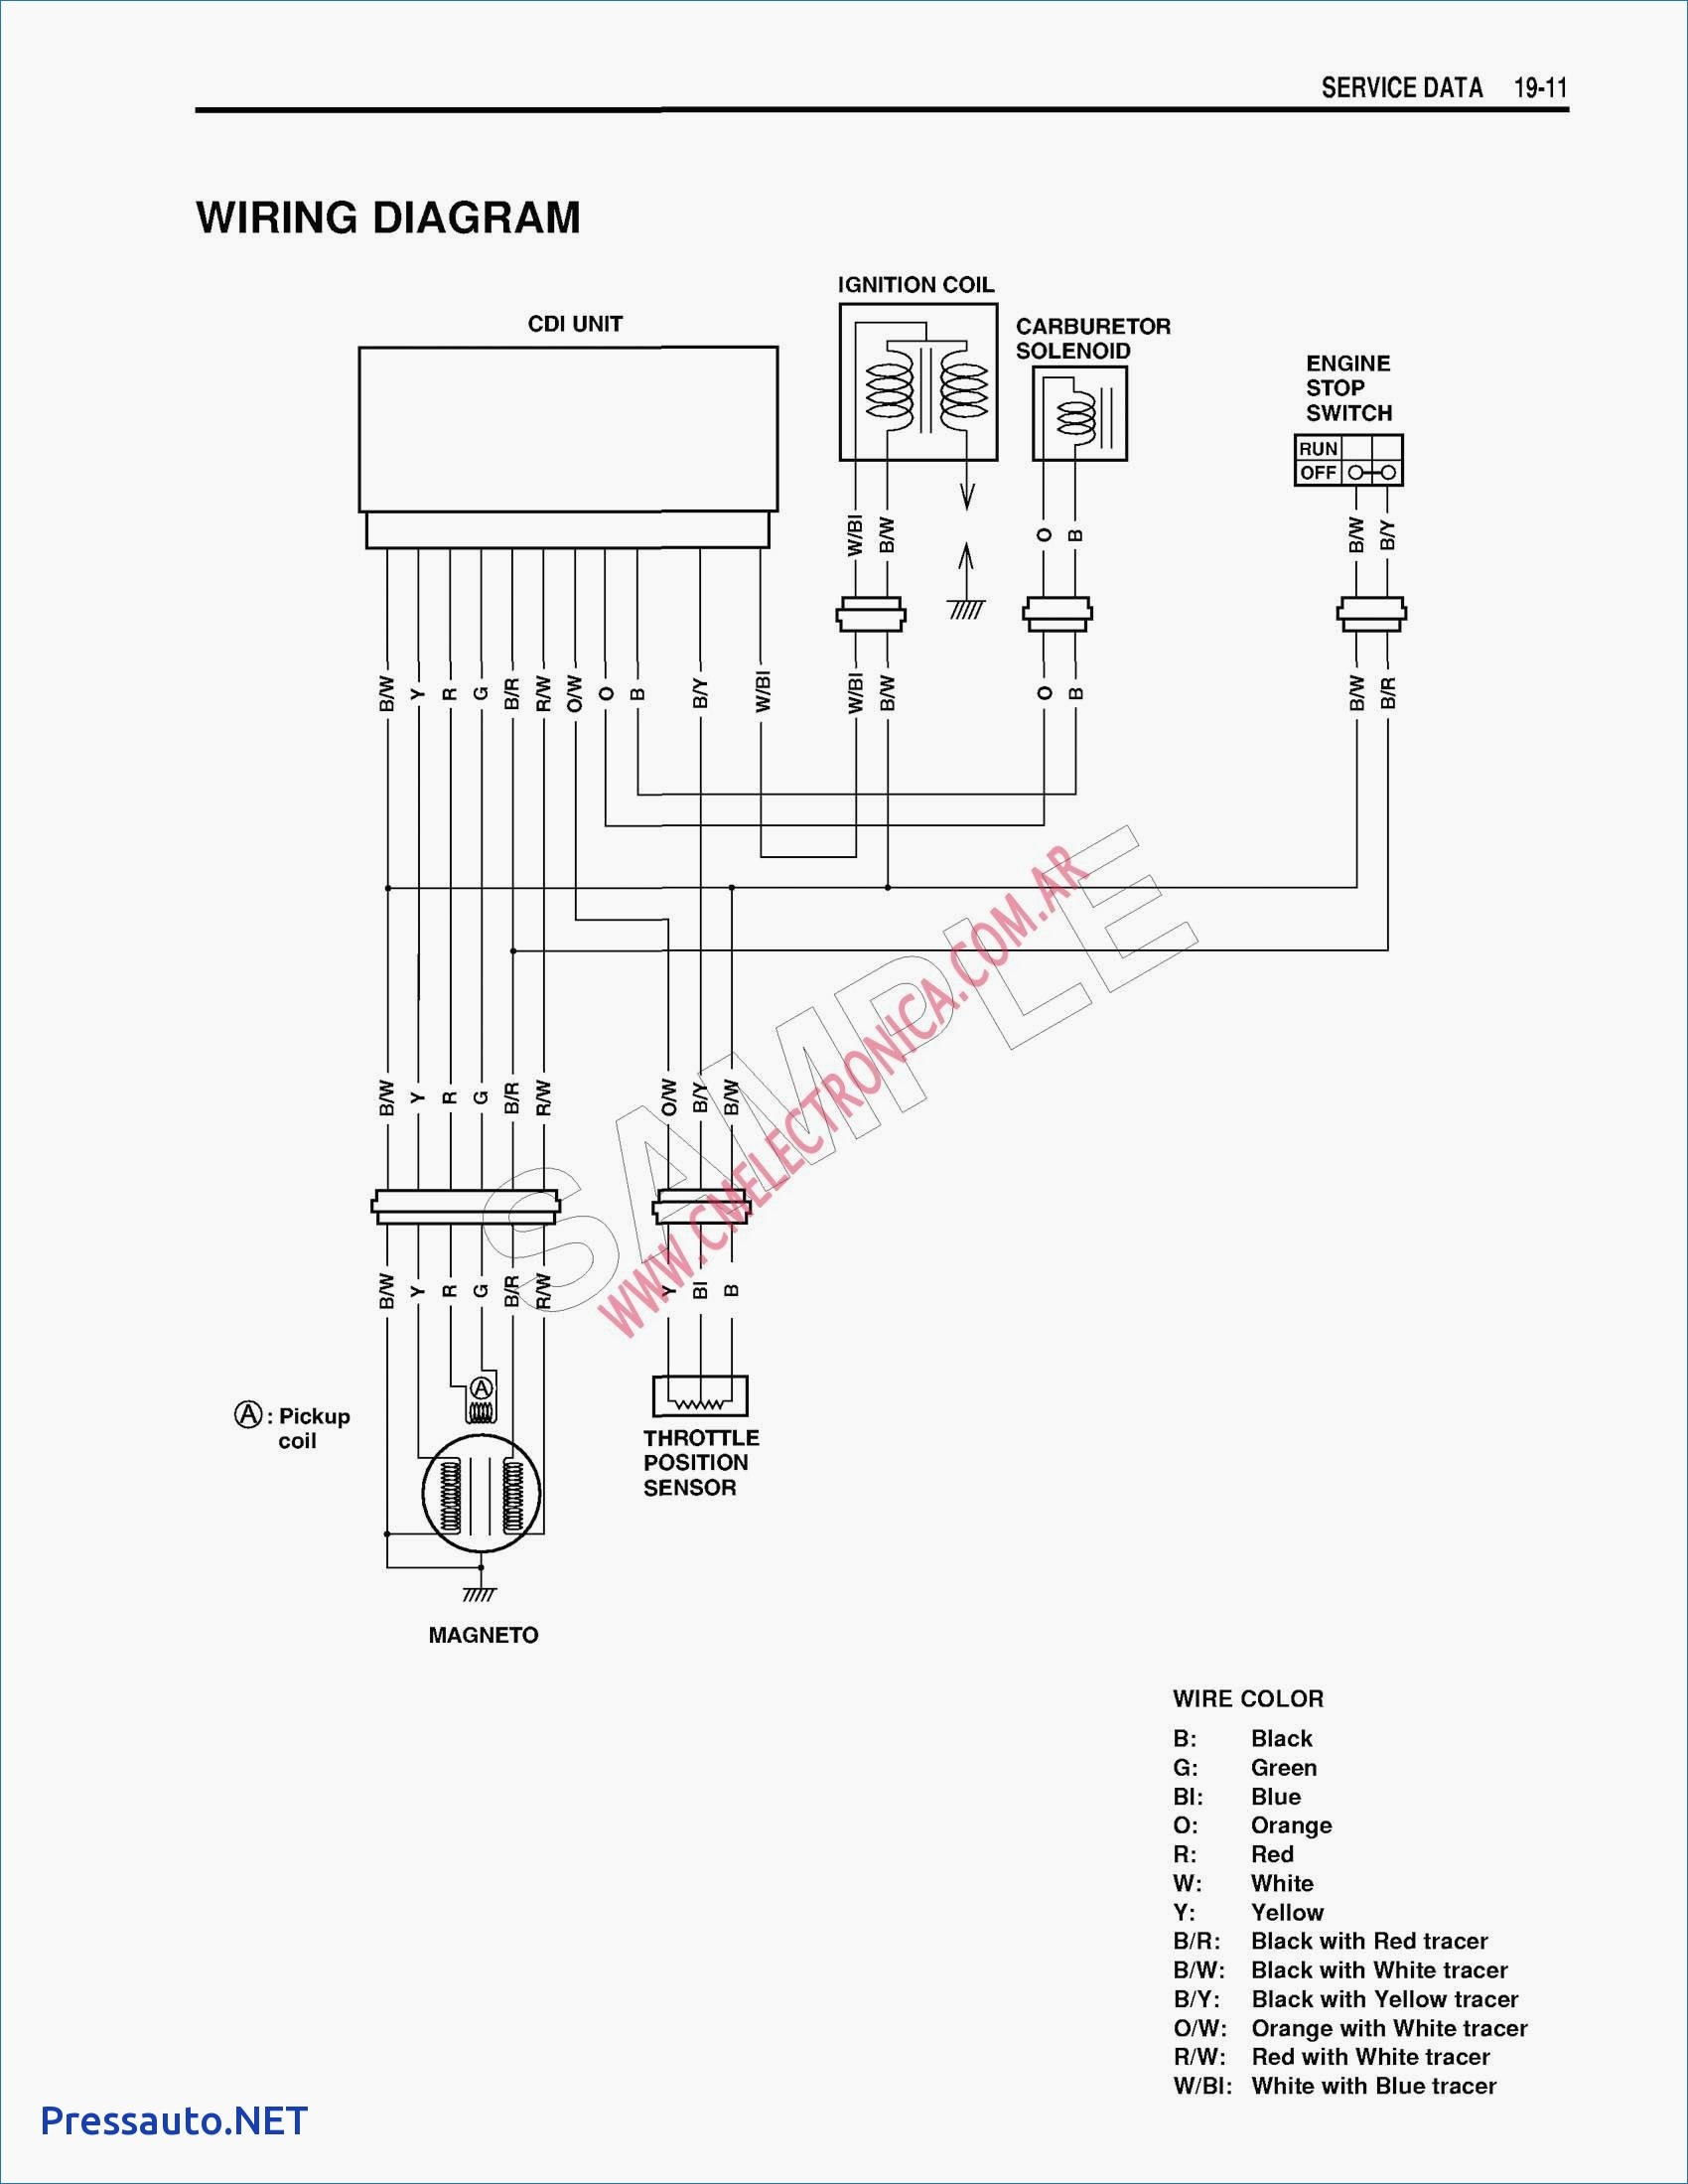 ED3C8 Wiring Diagram Of Motorcycle Honda Tmx 155 | Wiring ResourcesWiring Resources